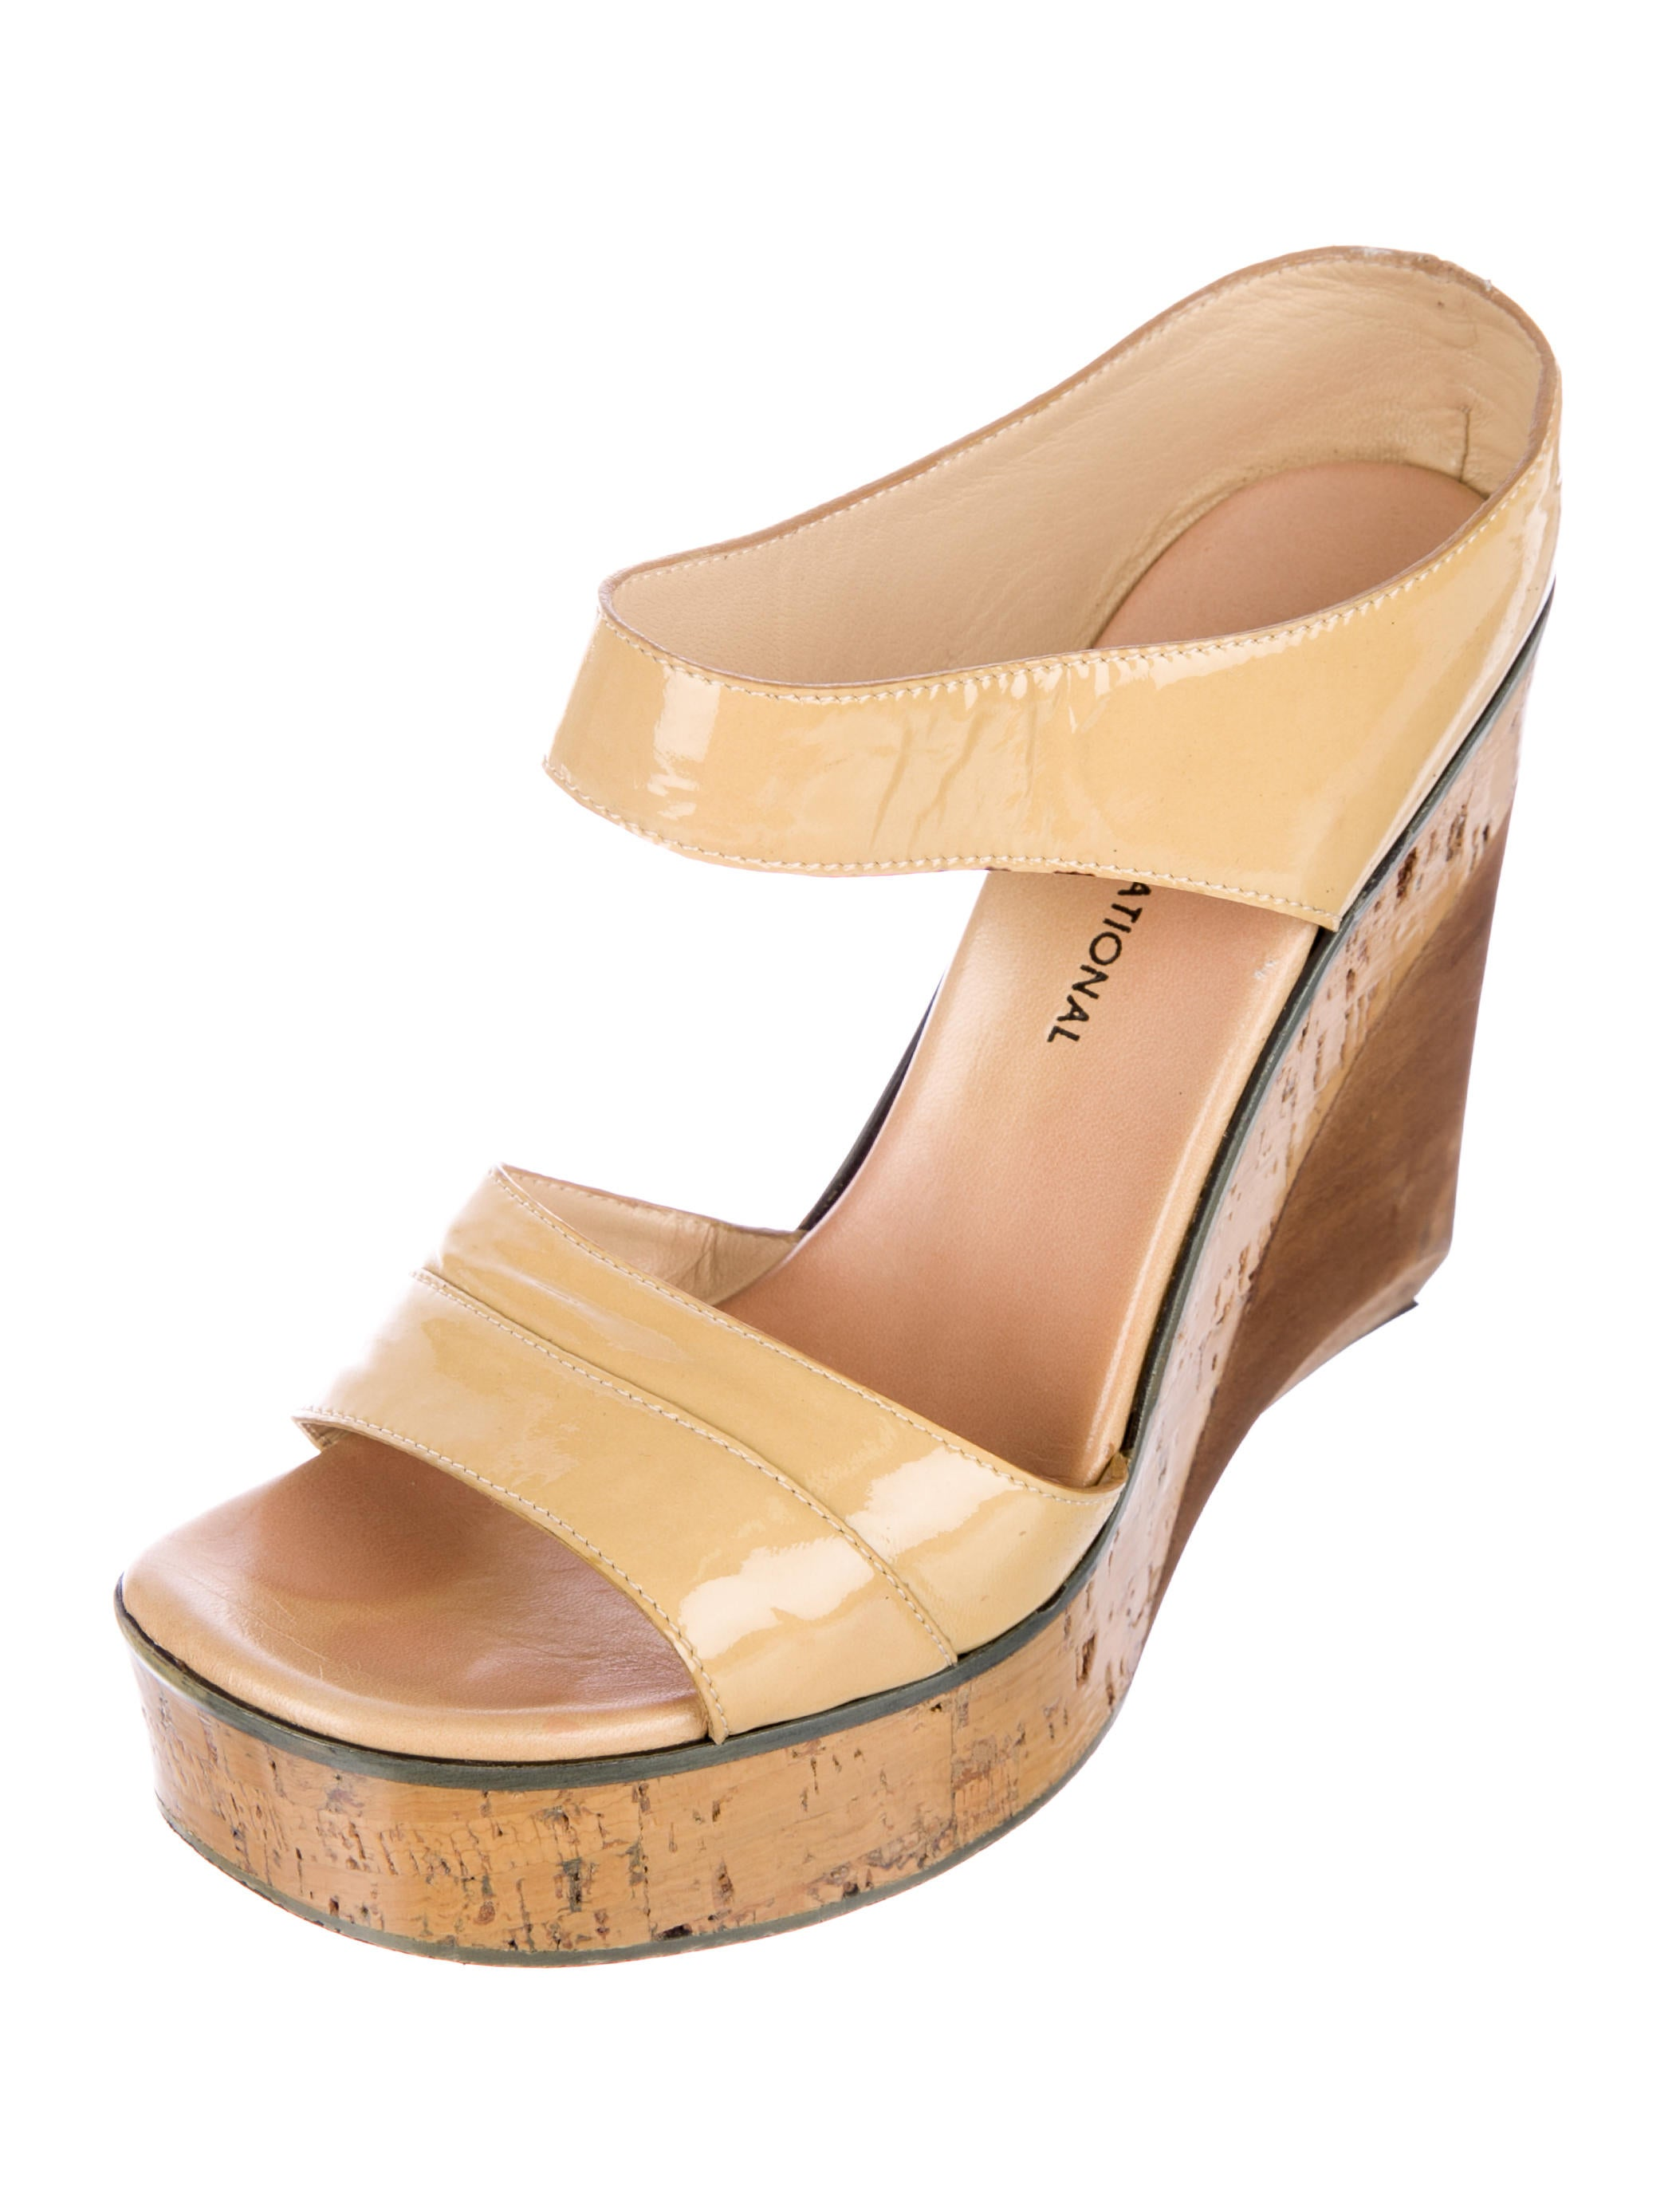 new arrival cheap price free shipping clearance Costume National Patent Leather Wedge Sandals cheap for sale clearance sale online discount xeoBe